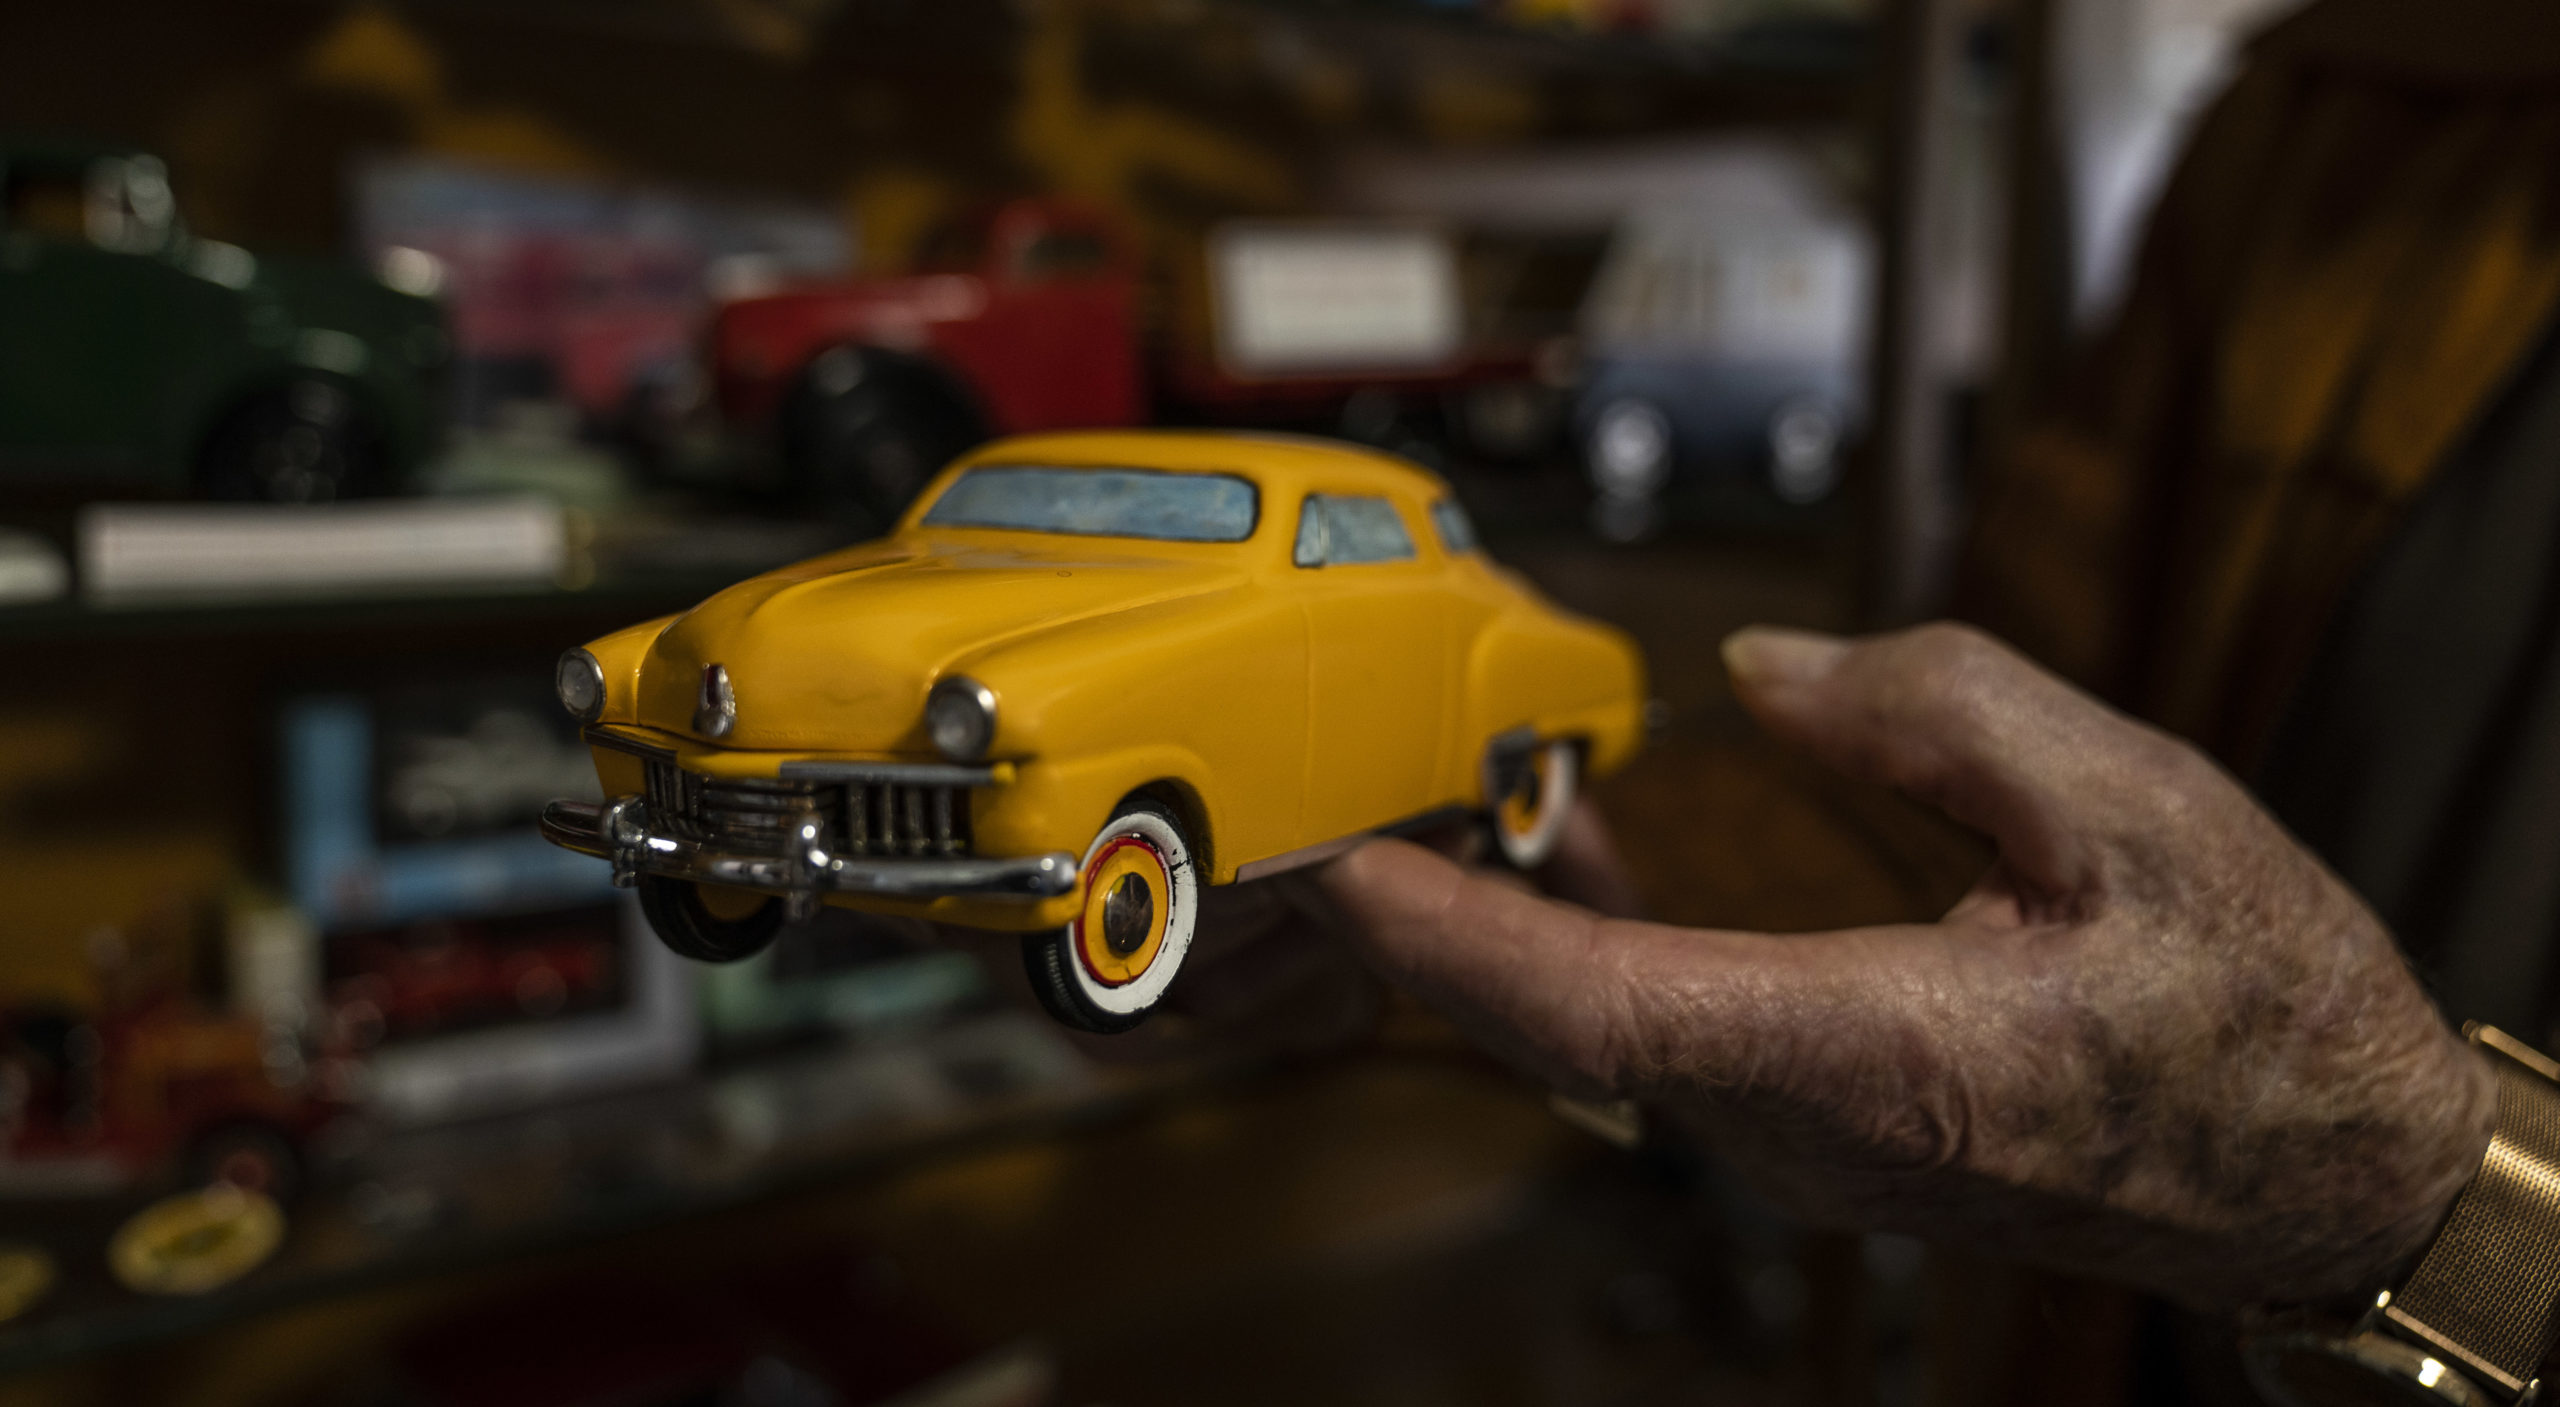 A hand-made model Peter crafted of his Studebaker. Image: RAA/Ellen Morgan